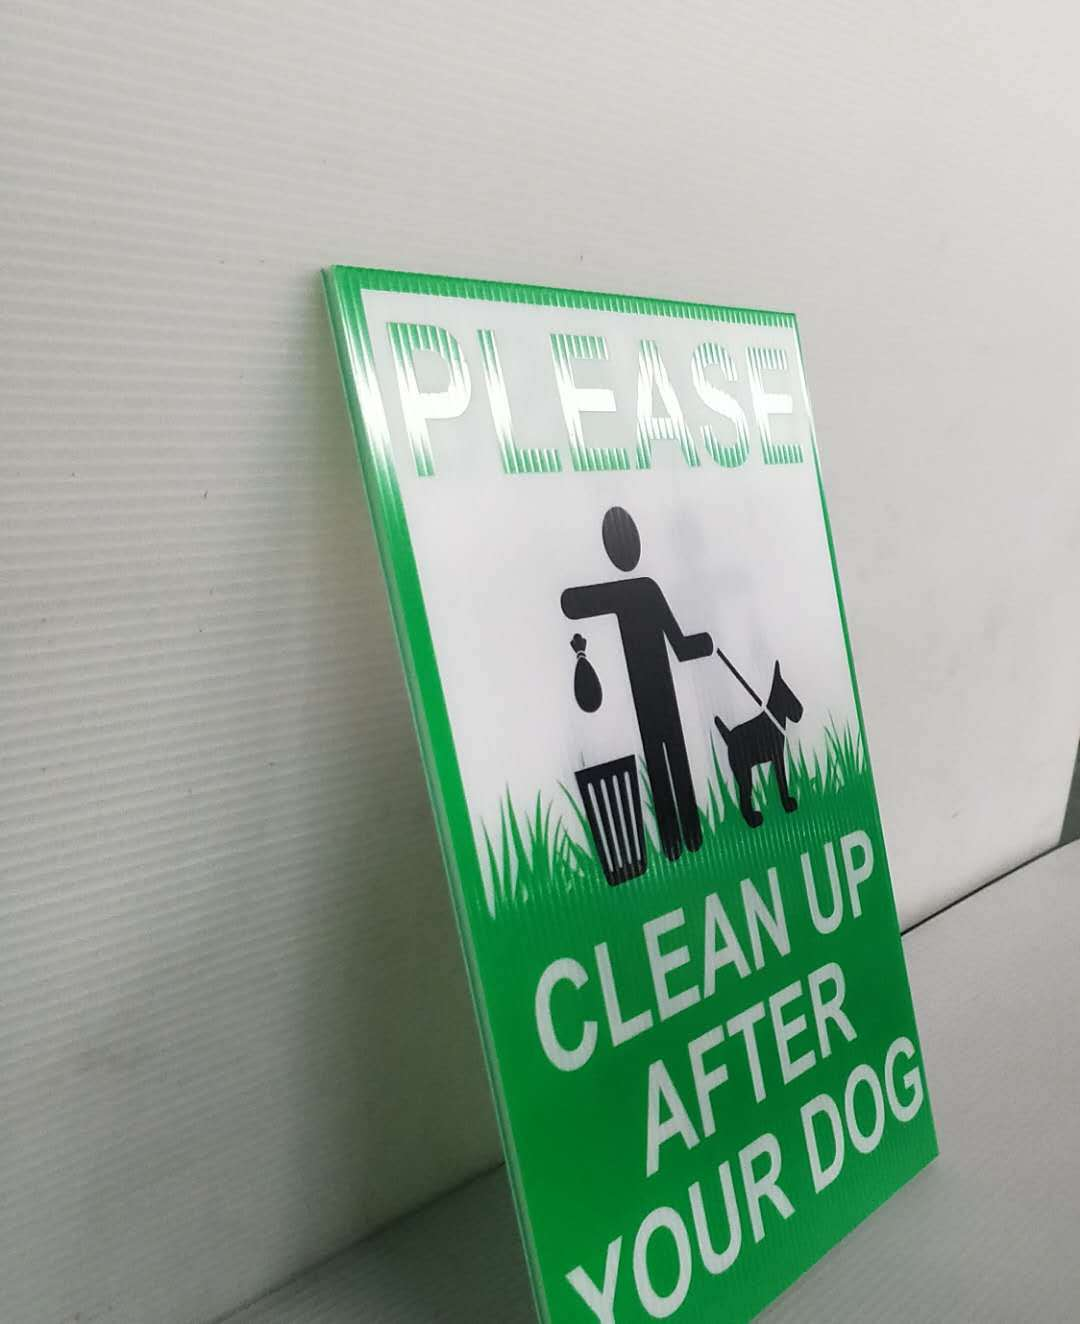 Whats the usual printing of plastic hollow sign?